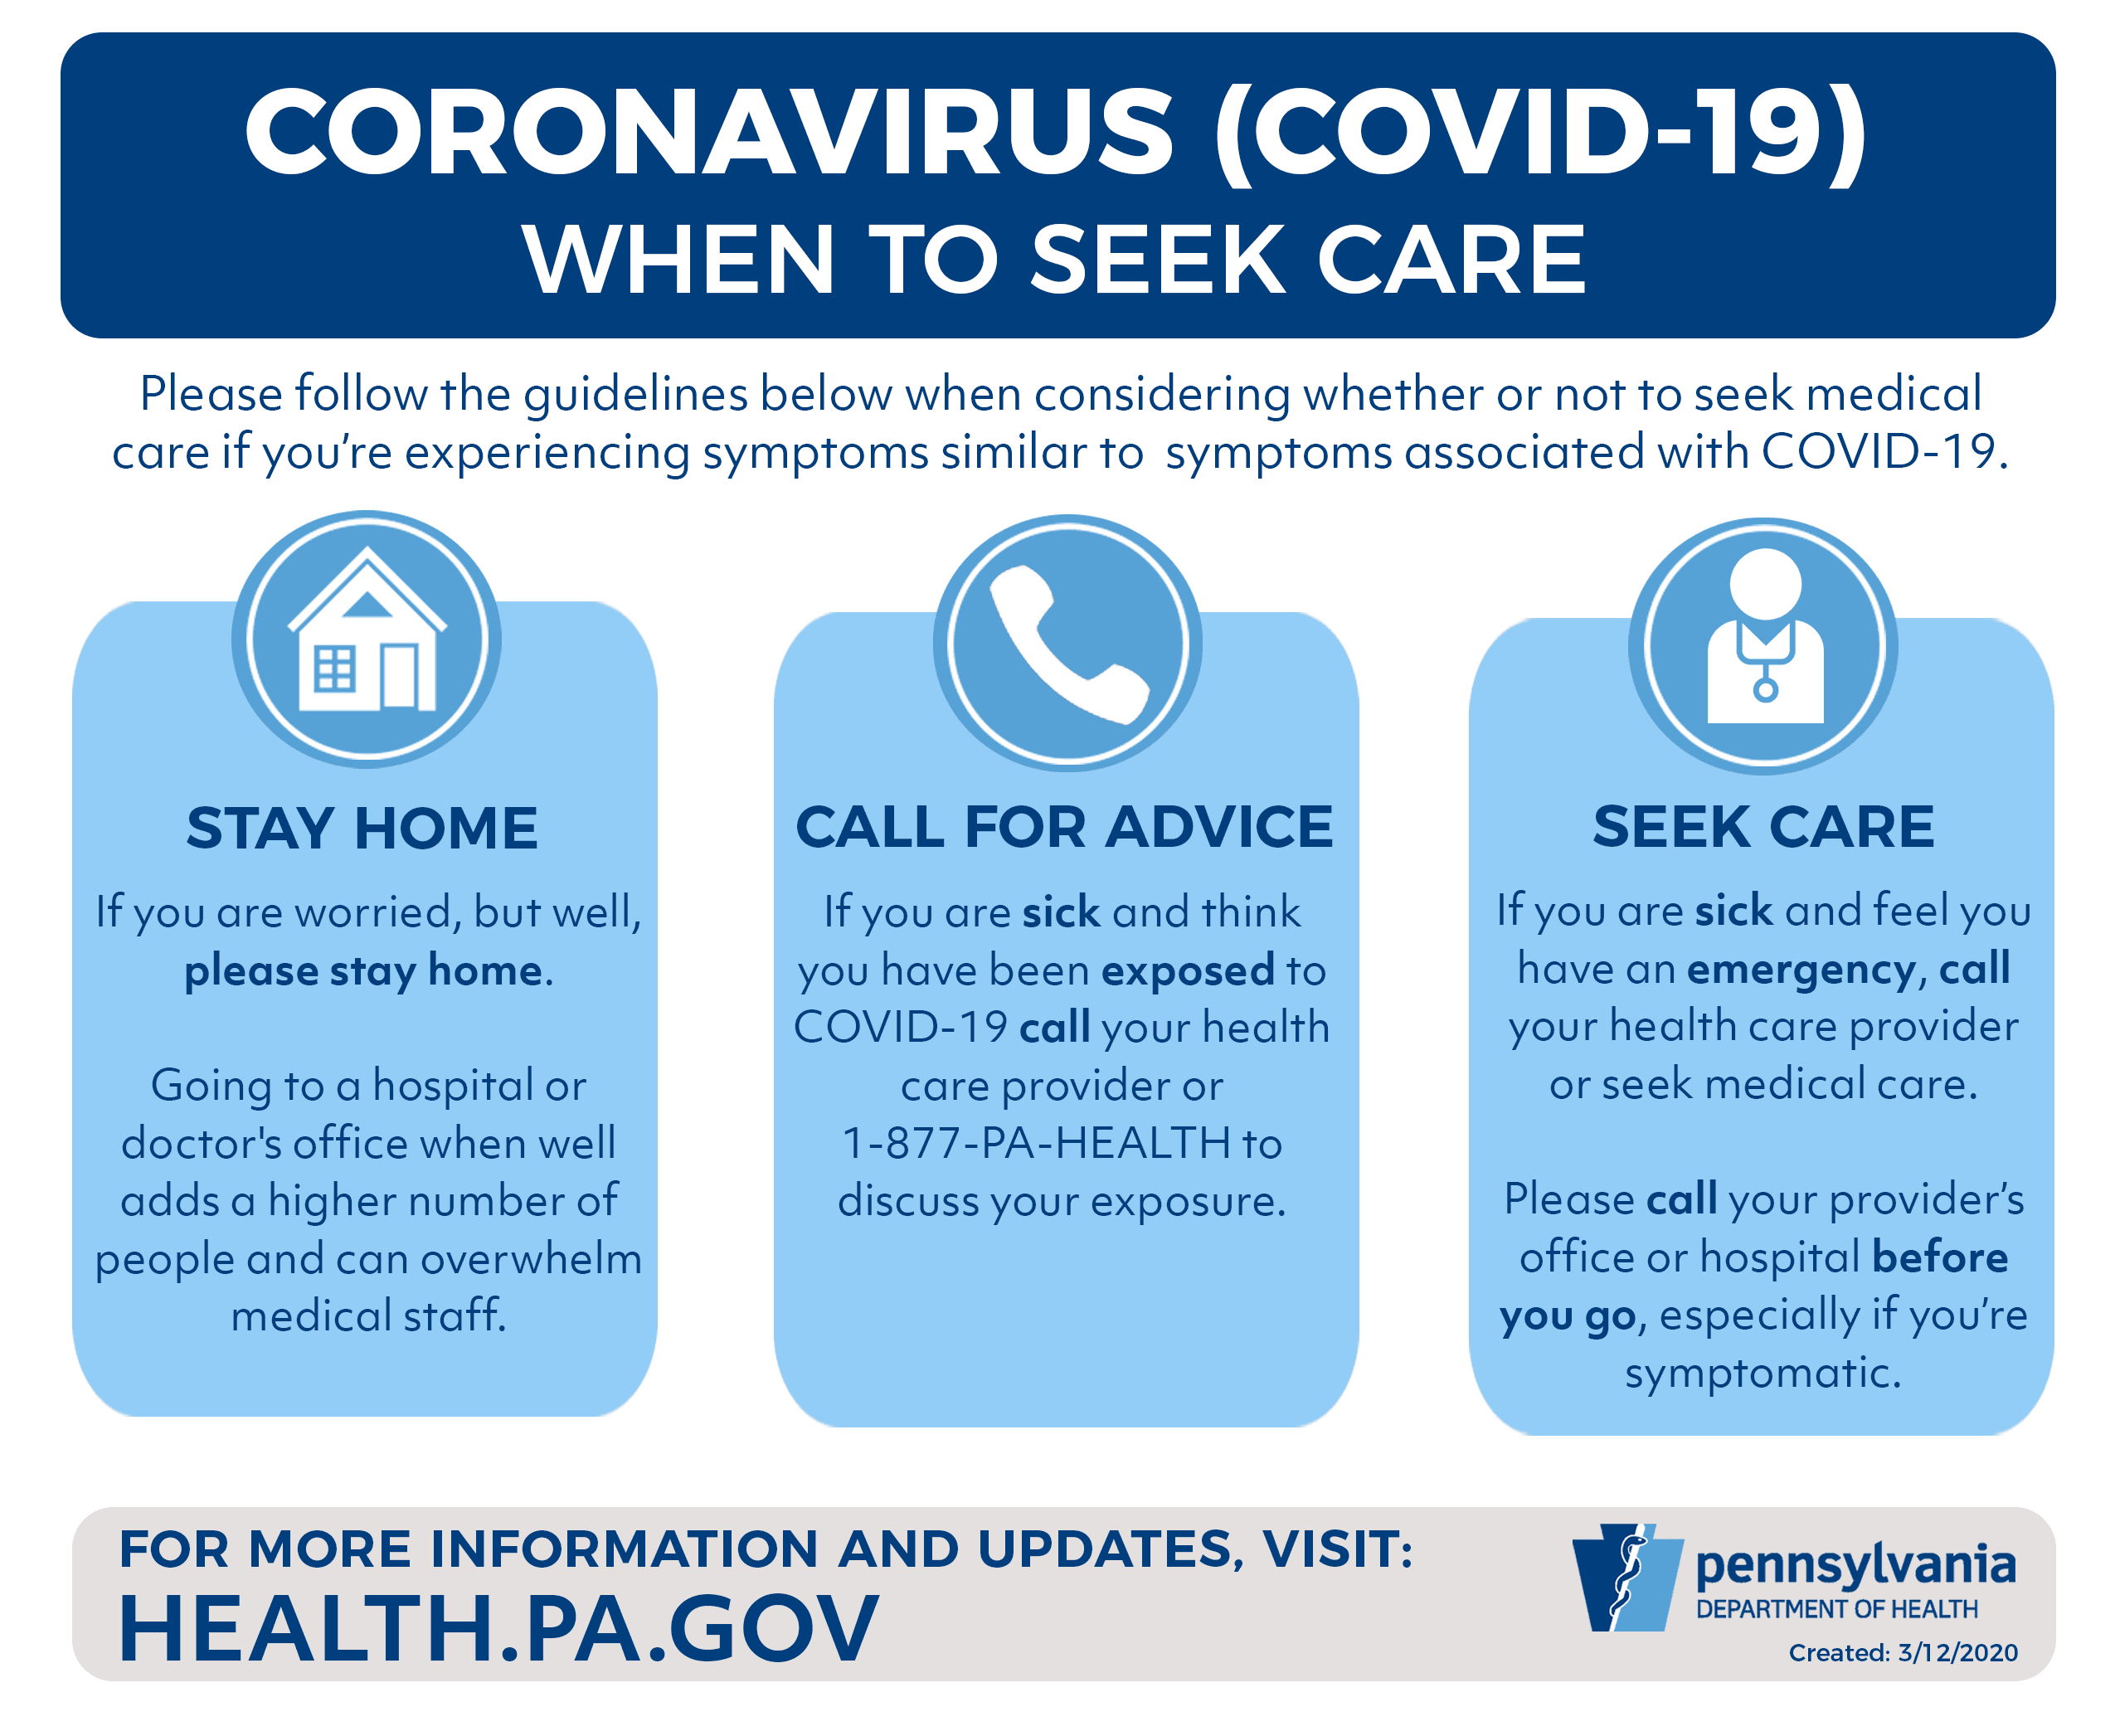 Coronavirus When to Seek Care